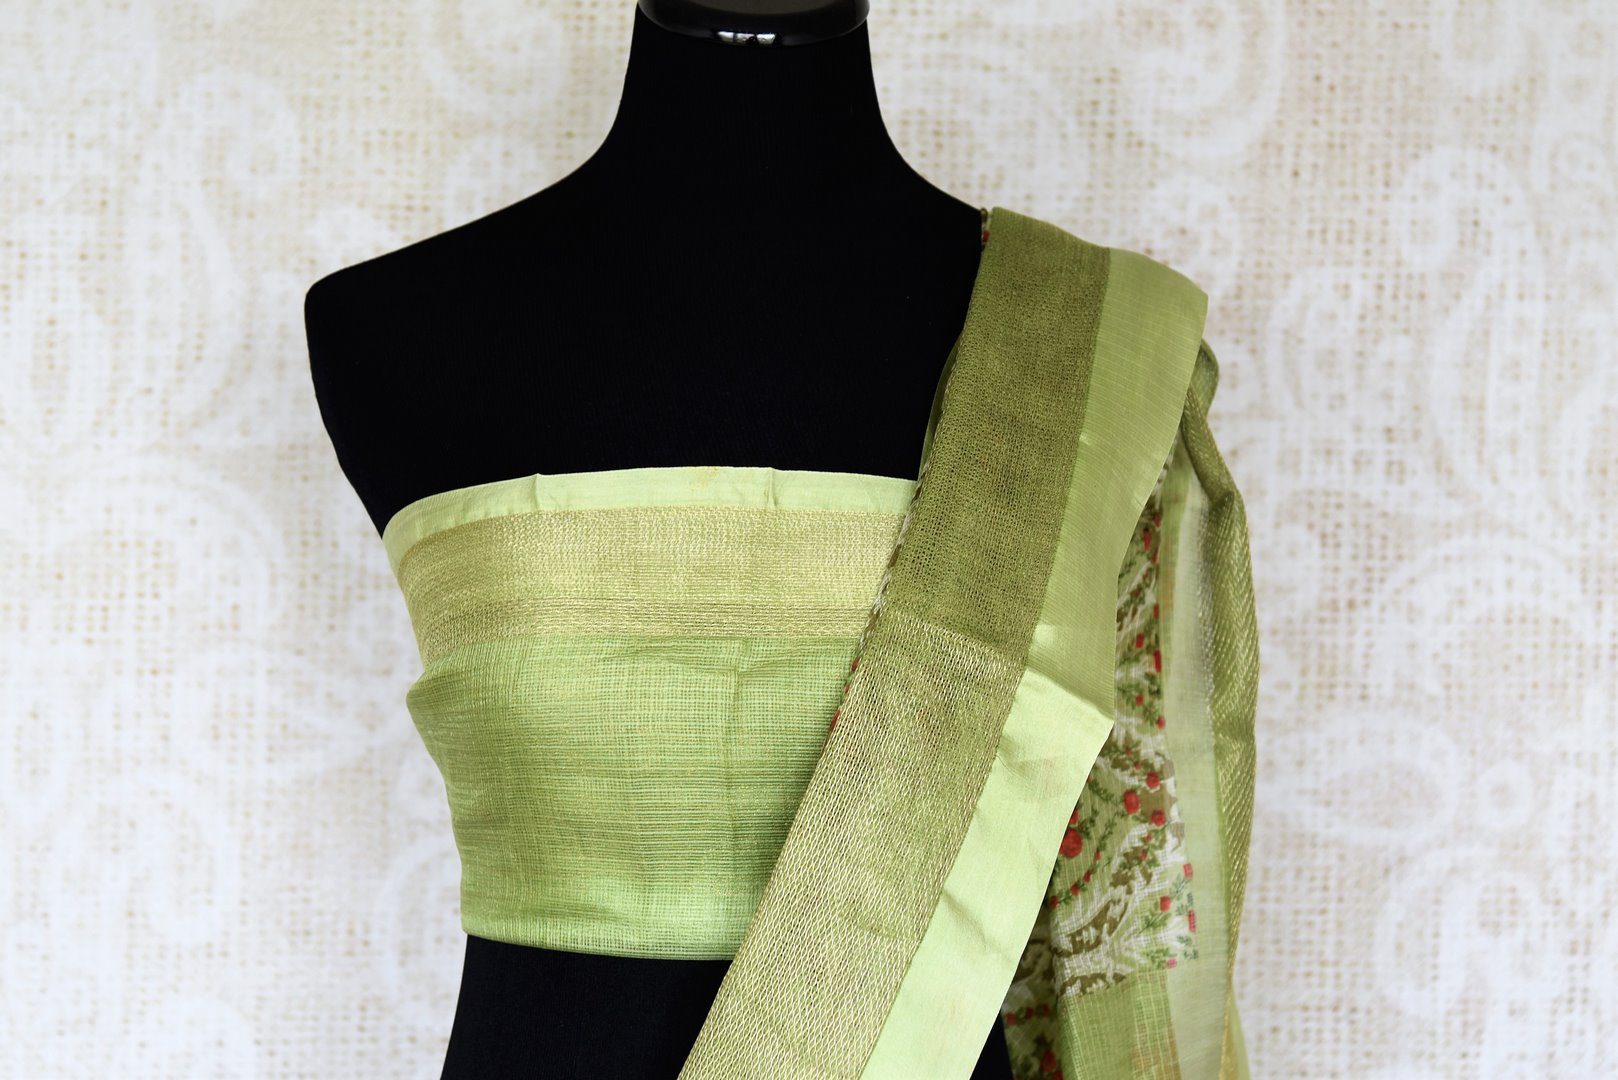 Uo your stylish quotient with our green zari kota silk floral hand printed sari. Run errands or show up at a family gathering in this beautiful silk saree. Pair matching green blouse to steal the show. Shop handloom sarees, Indian designer silk saris, banarsi sarees online or visit Pure Elegance store in USA. -blouse pallu